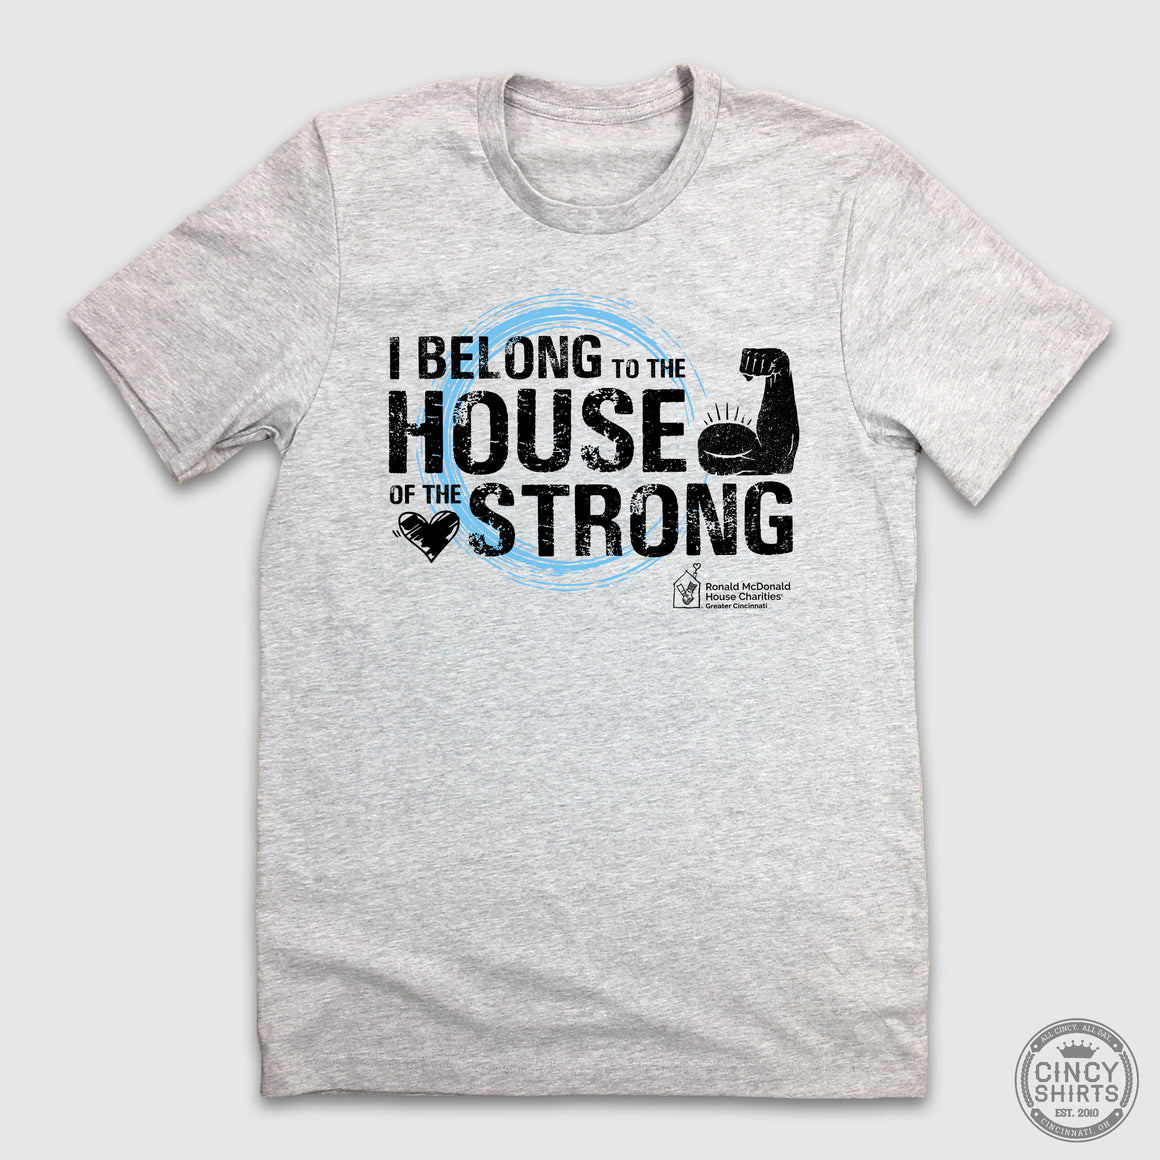 I Belong to the House of the Strong - Ronald McDonald House - Cincy Shirts